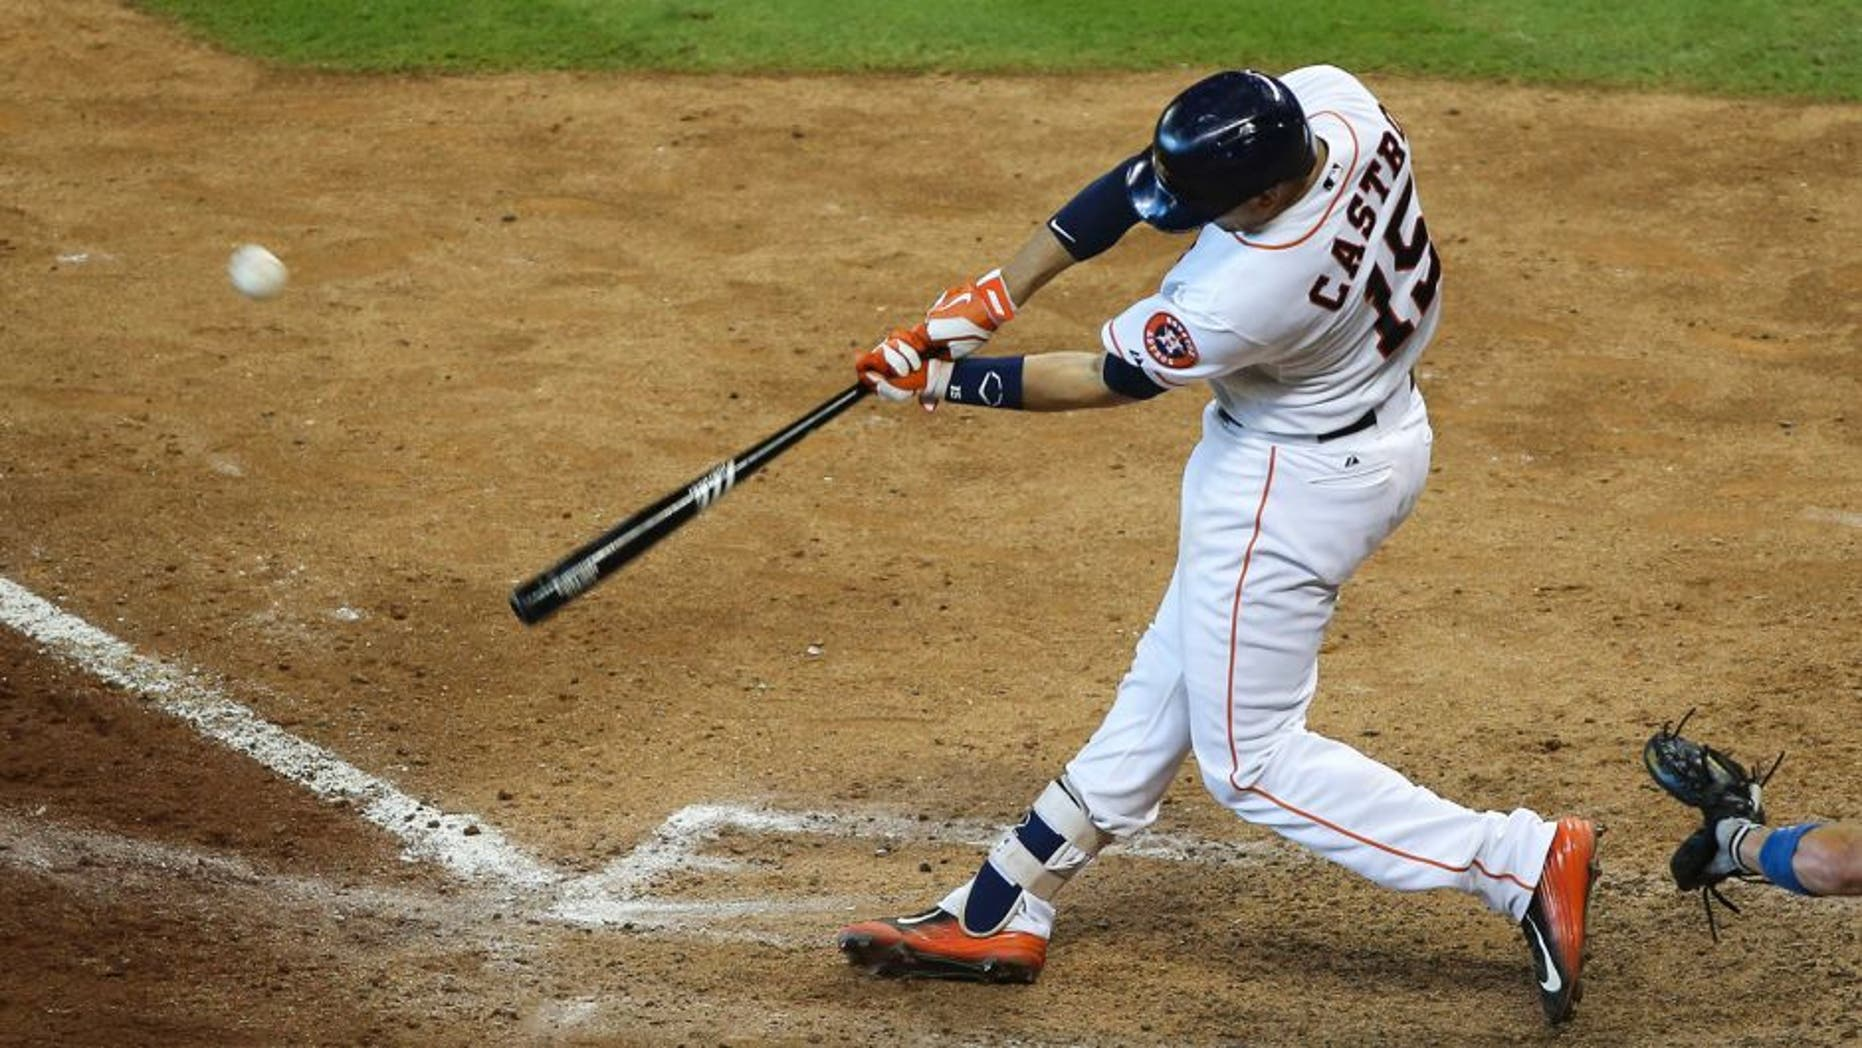 Aug 23, 2015; Houston, TX, USA; Houston Astros catcher Jason Castro (15) hits a game winning walk off home run during the tenth inning against the Los Angeles Dodgers at Minute Maid Park. The Astros defeated the Dodgers 3-2. Mandatory Credit: Troy Taormina-USA TODAY Sports